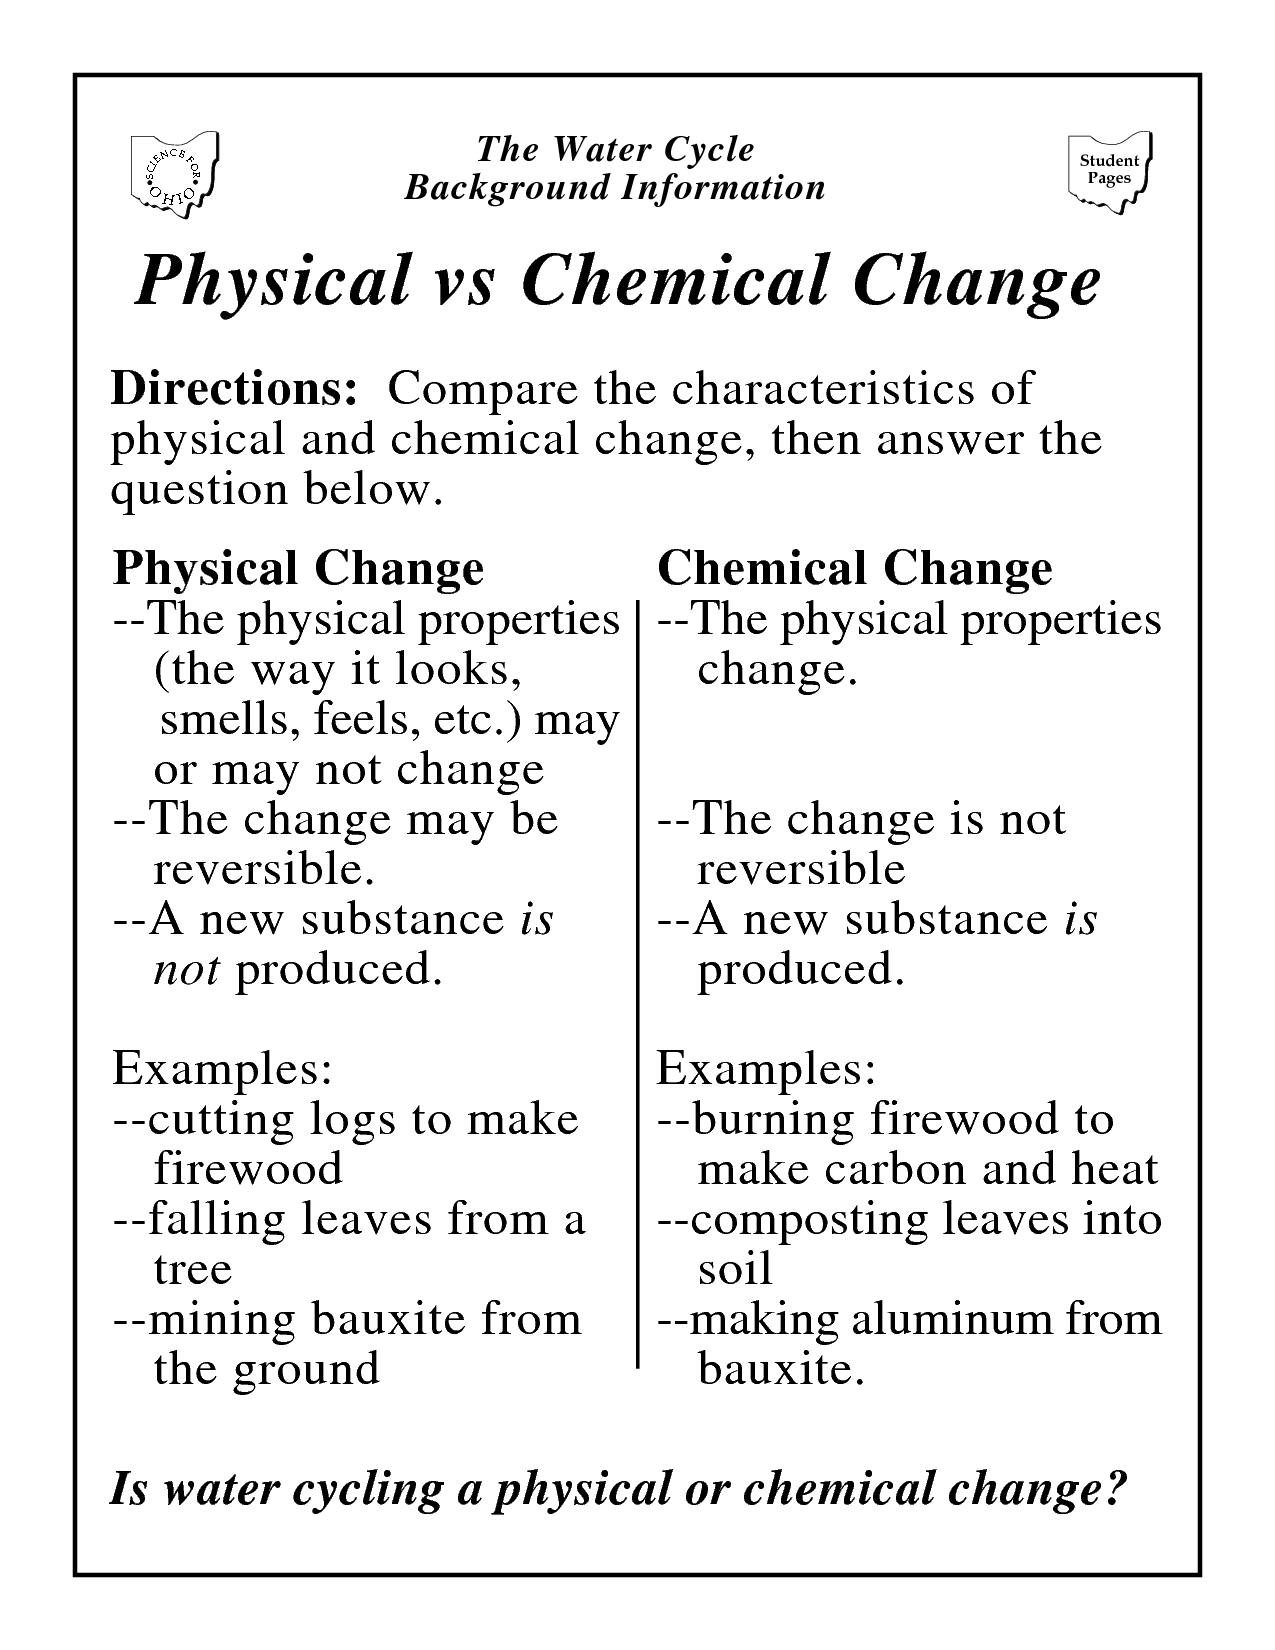 Physical Vs Chemical Changes Worksheet - Delibertad